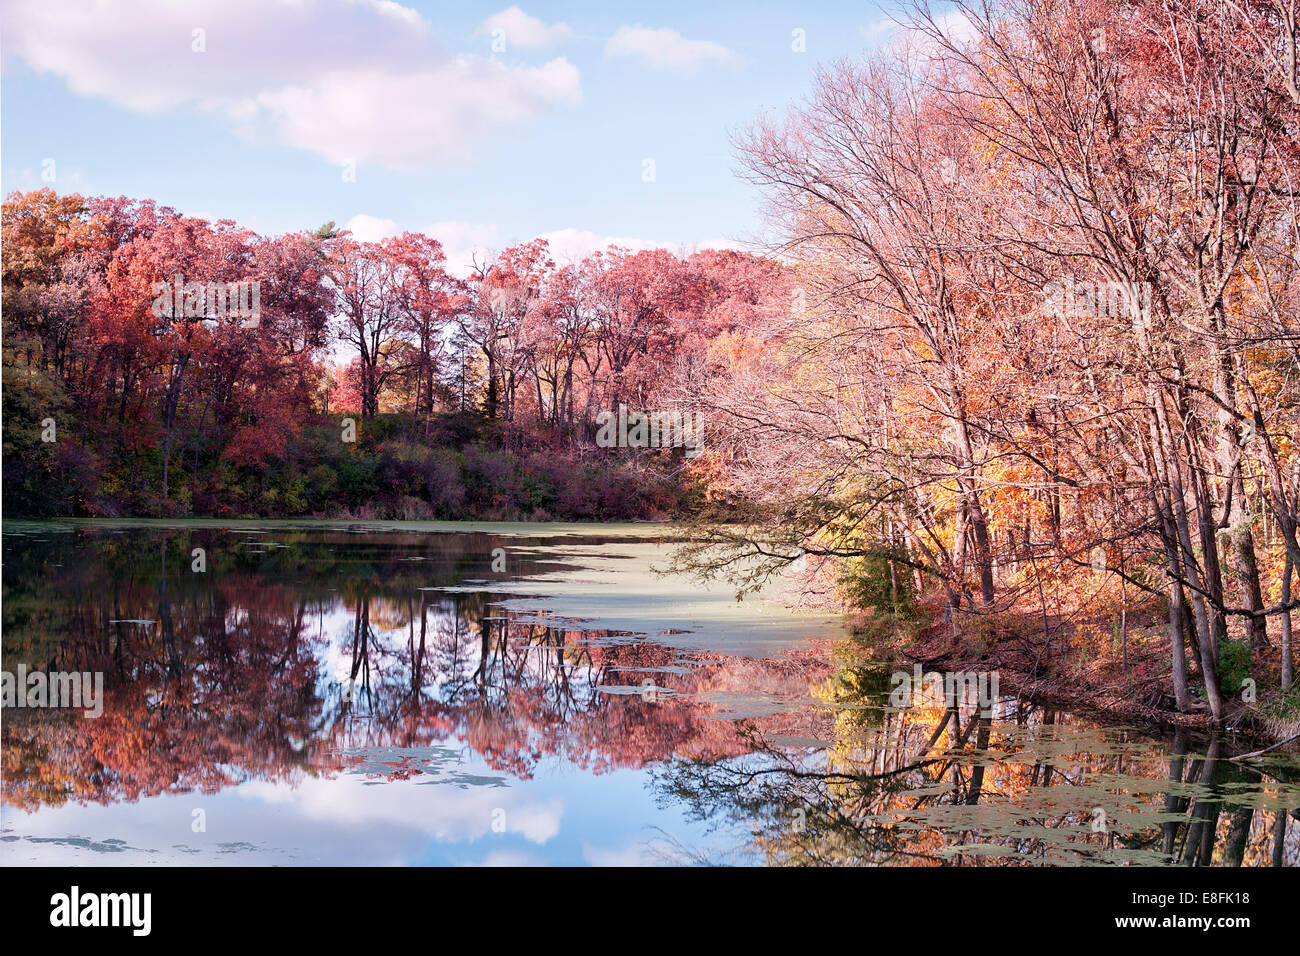 USA, Illinois, LaSalle County, Starved Rock, bunten Herbst Stockbild